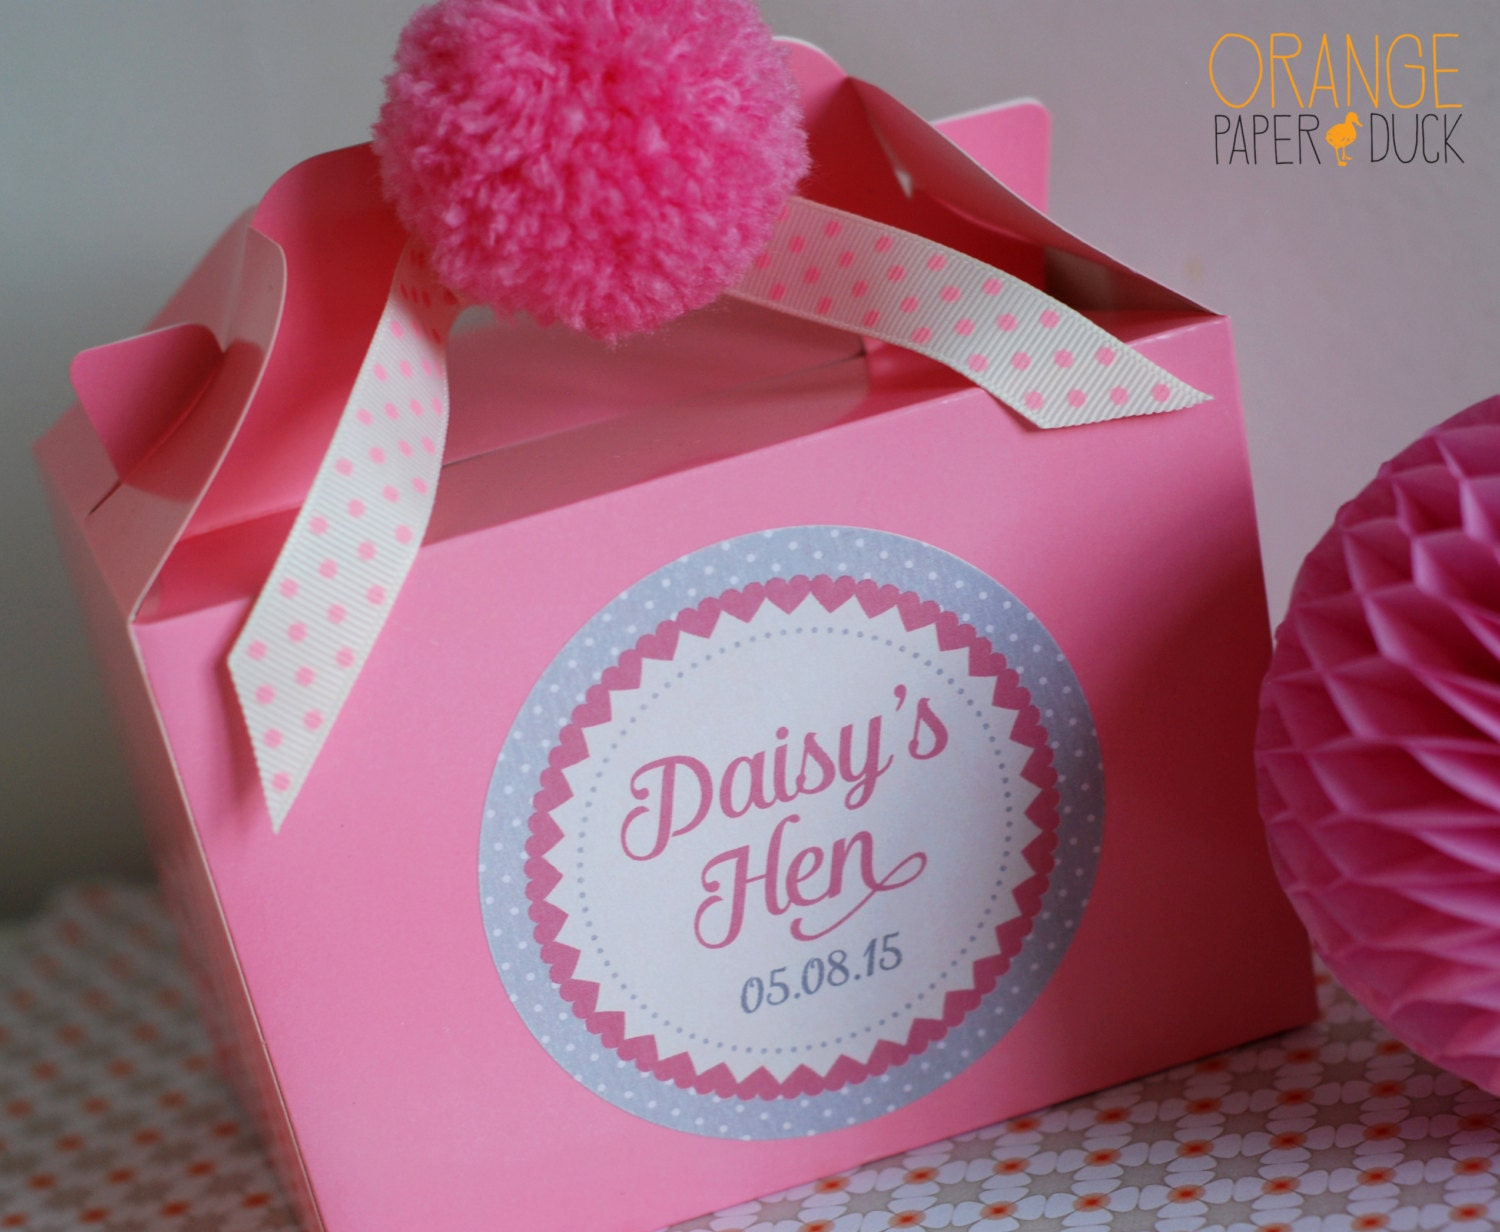 Personalised Wedding HEN PARTY Favour Box Activity Handmade